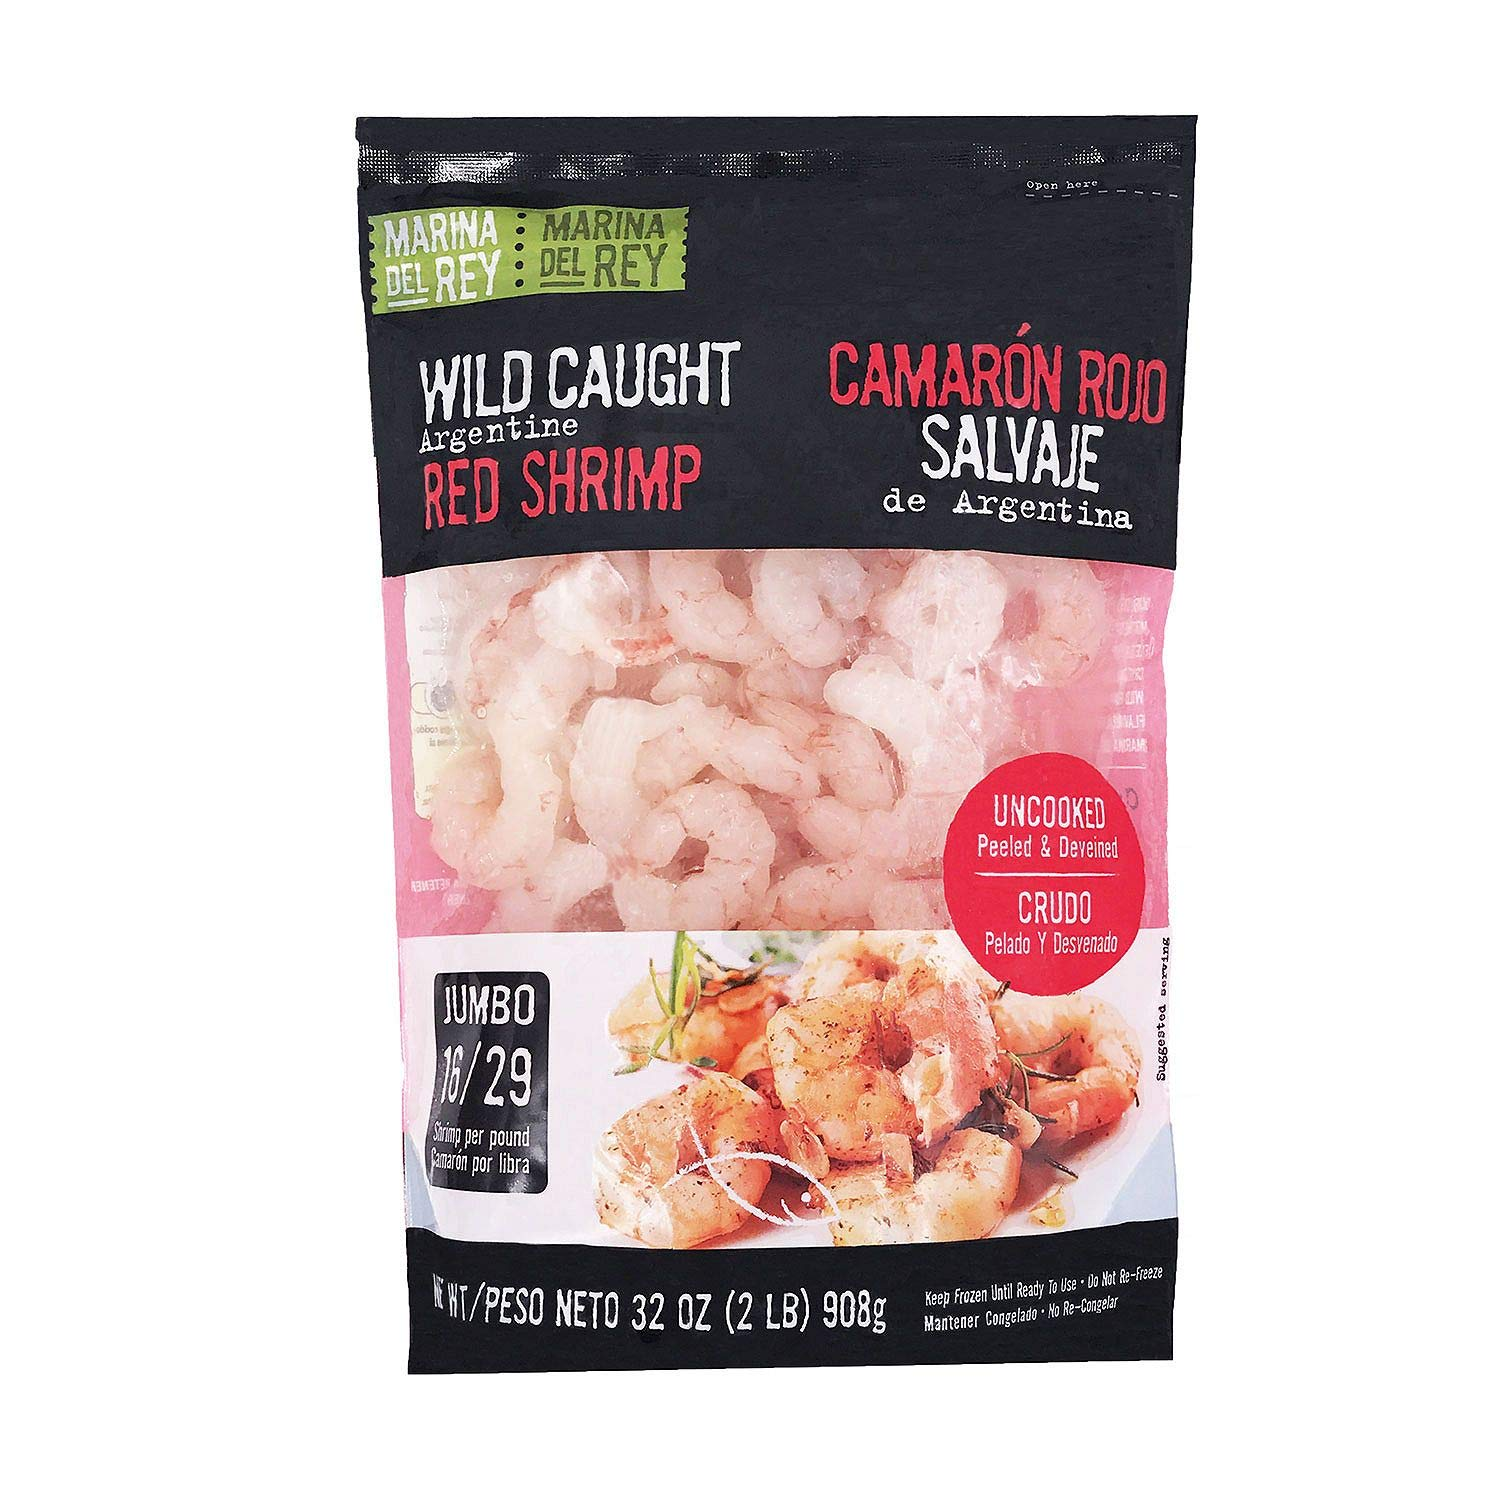 Wild Caught Argentine Red Shrimp (2 lbs.) (2): Amazon.com ...